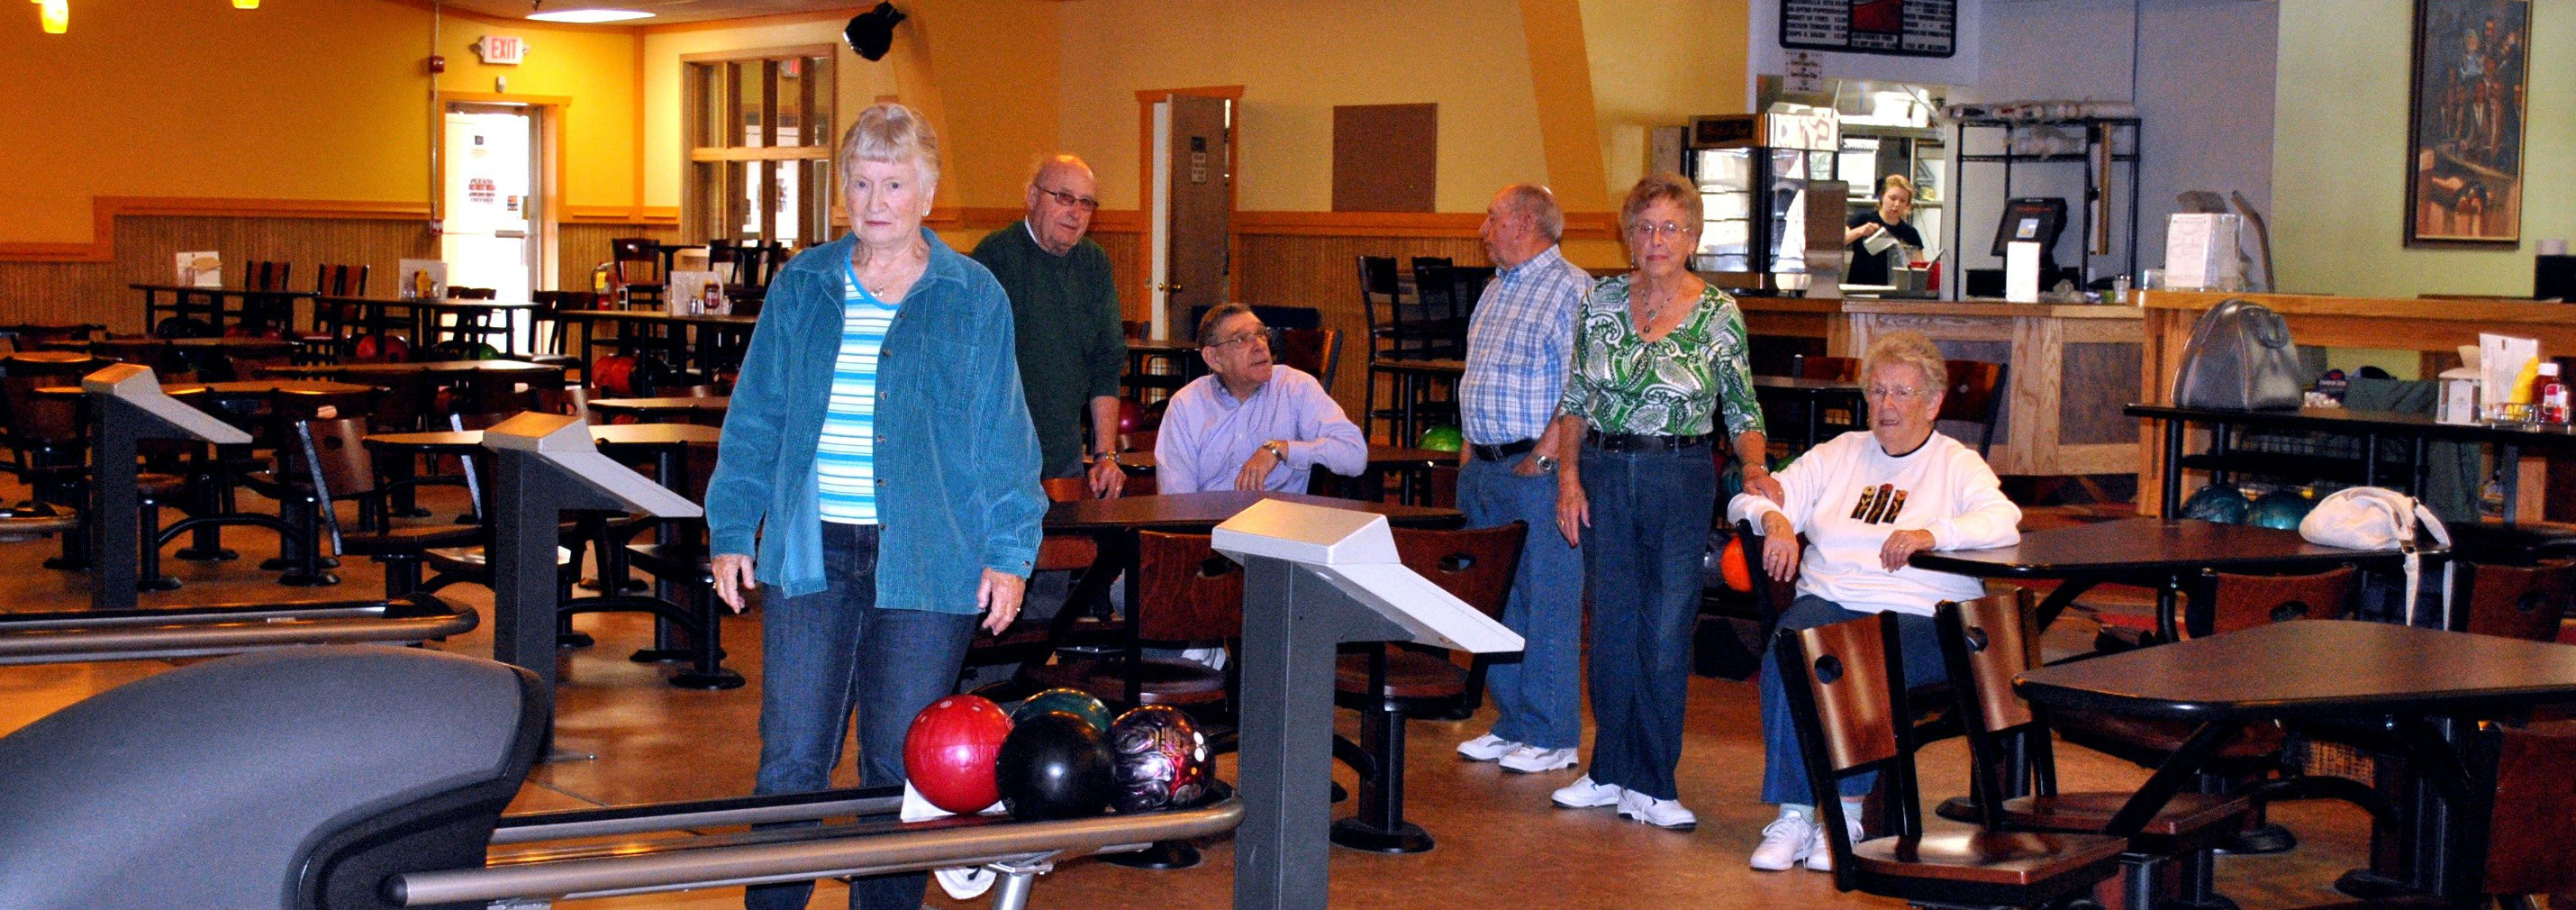 league bowling tournaments barre vt montpelier